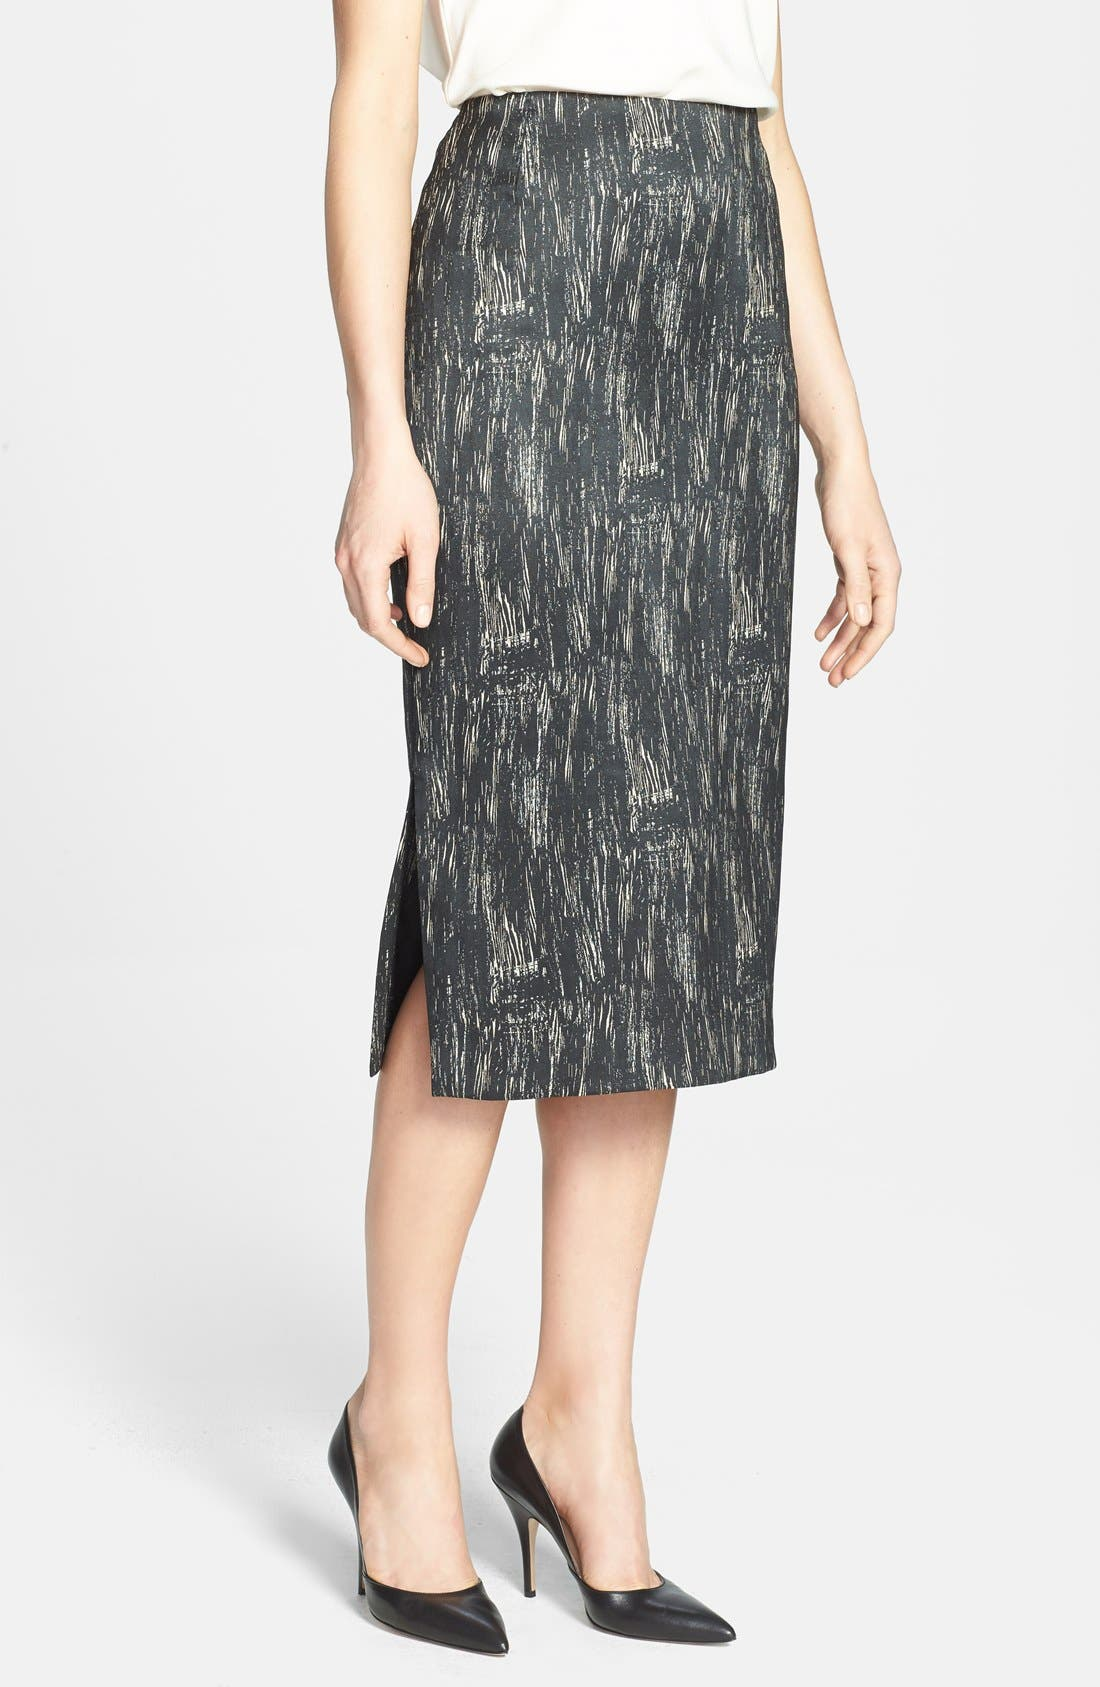 Alternate Image 1 Selected - Lafayette 148 New York 'Dayna - Nocturnal Etching' Skirt